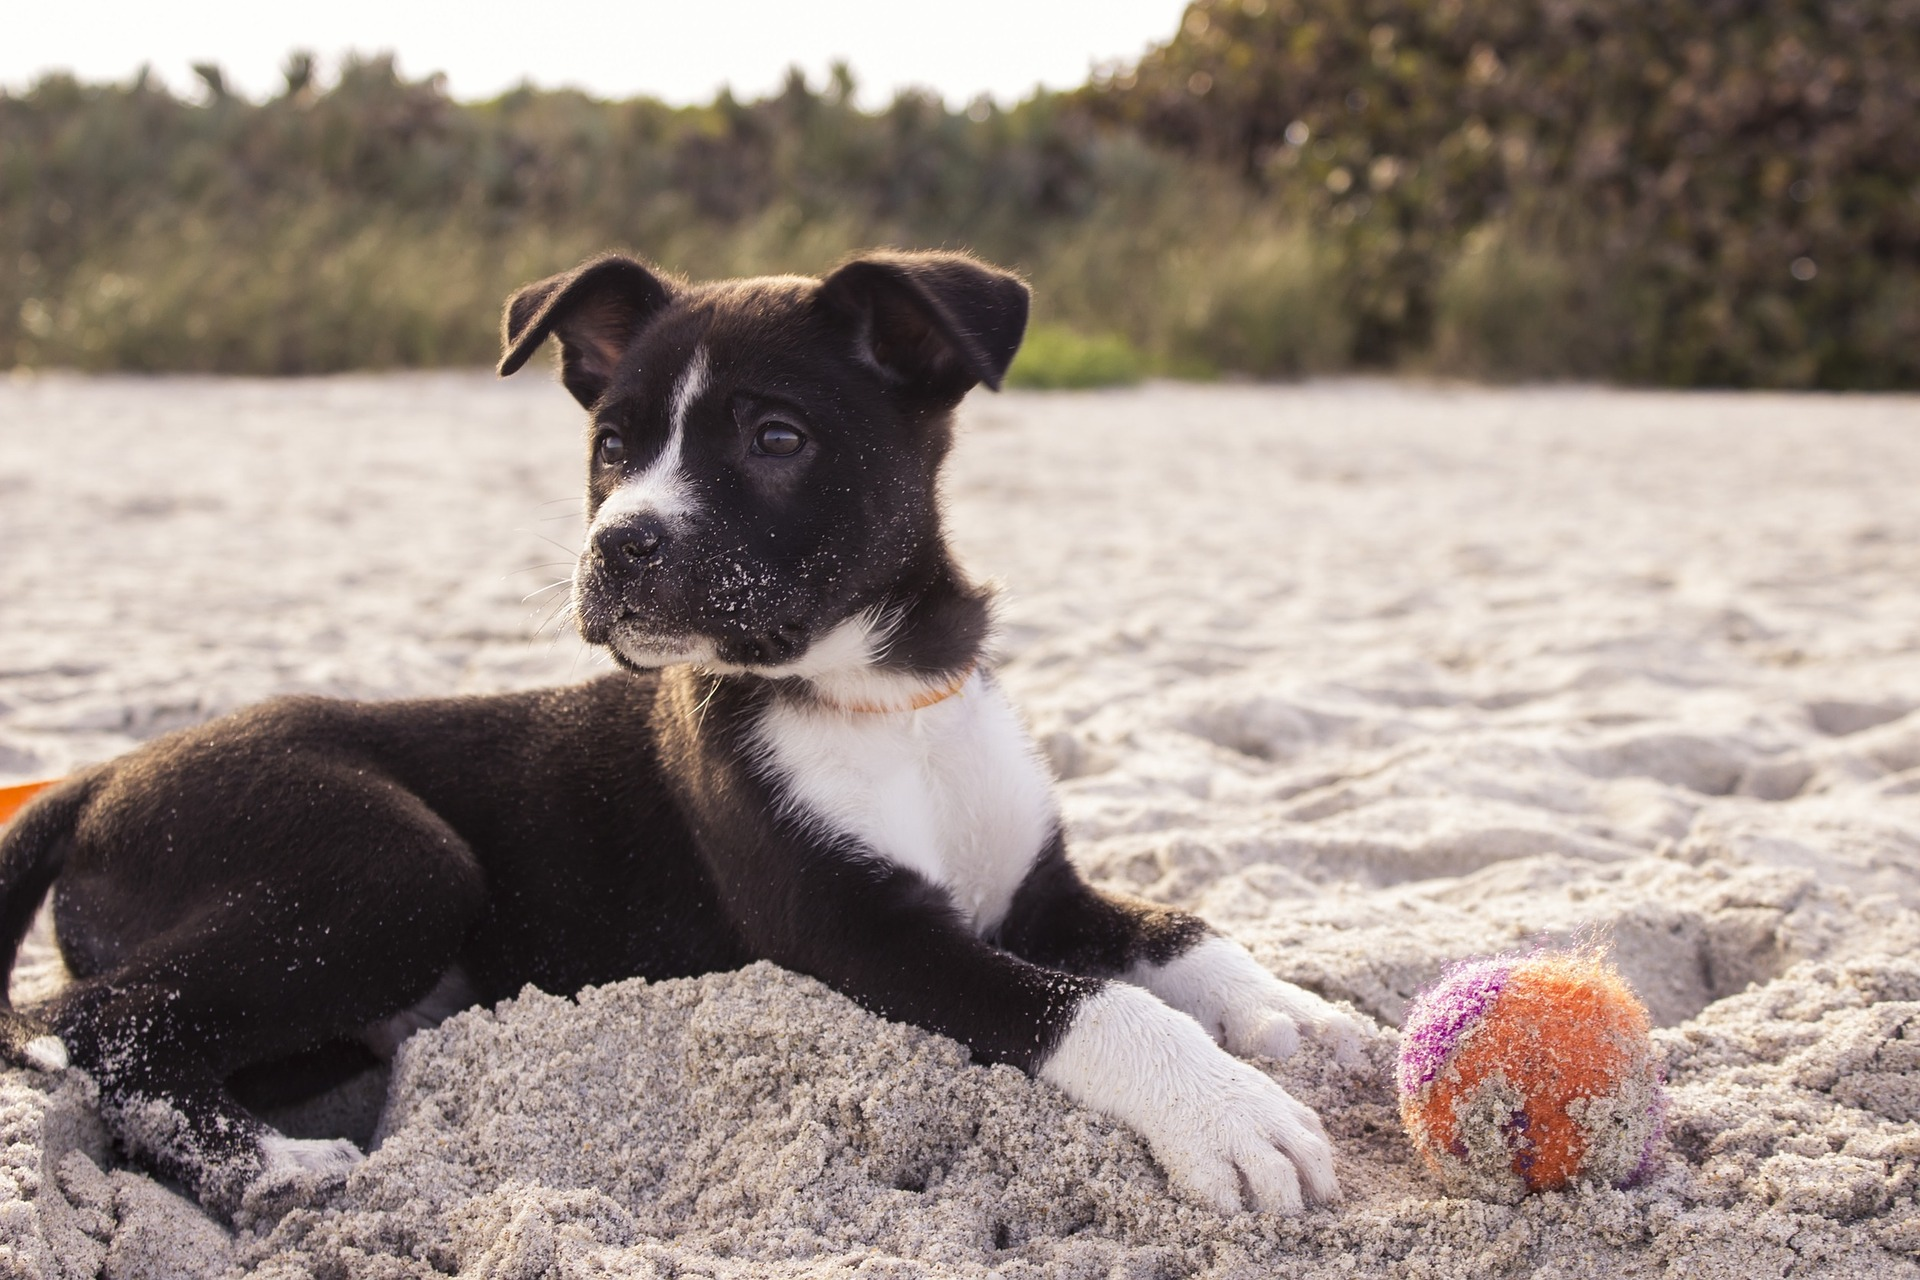 Thinking of Taking Your Pet Abroad? Here's What You Need to Know